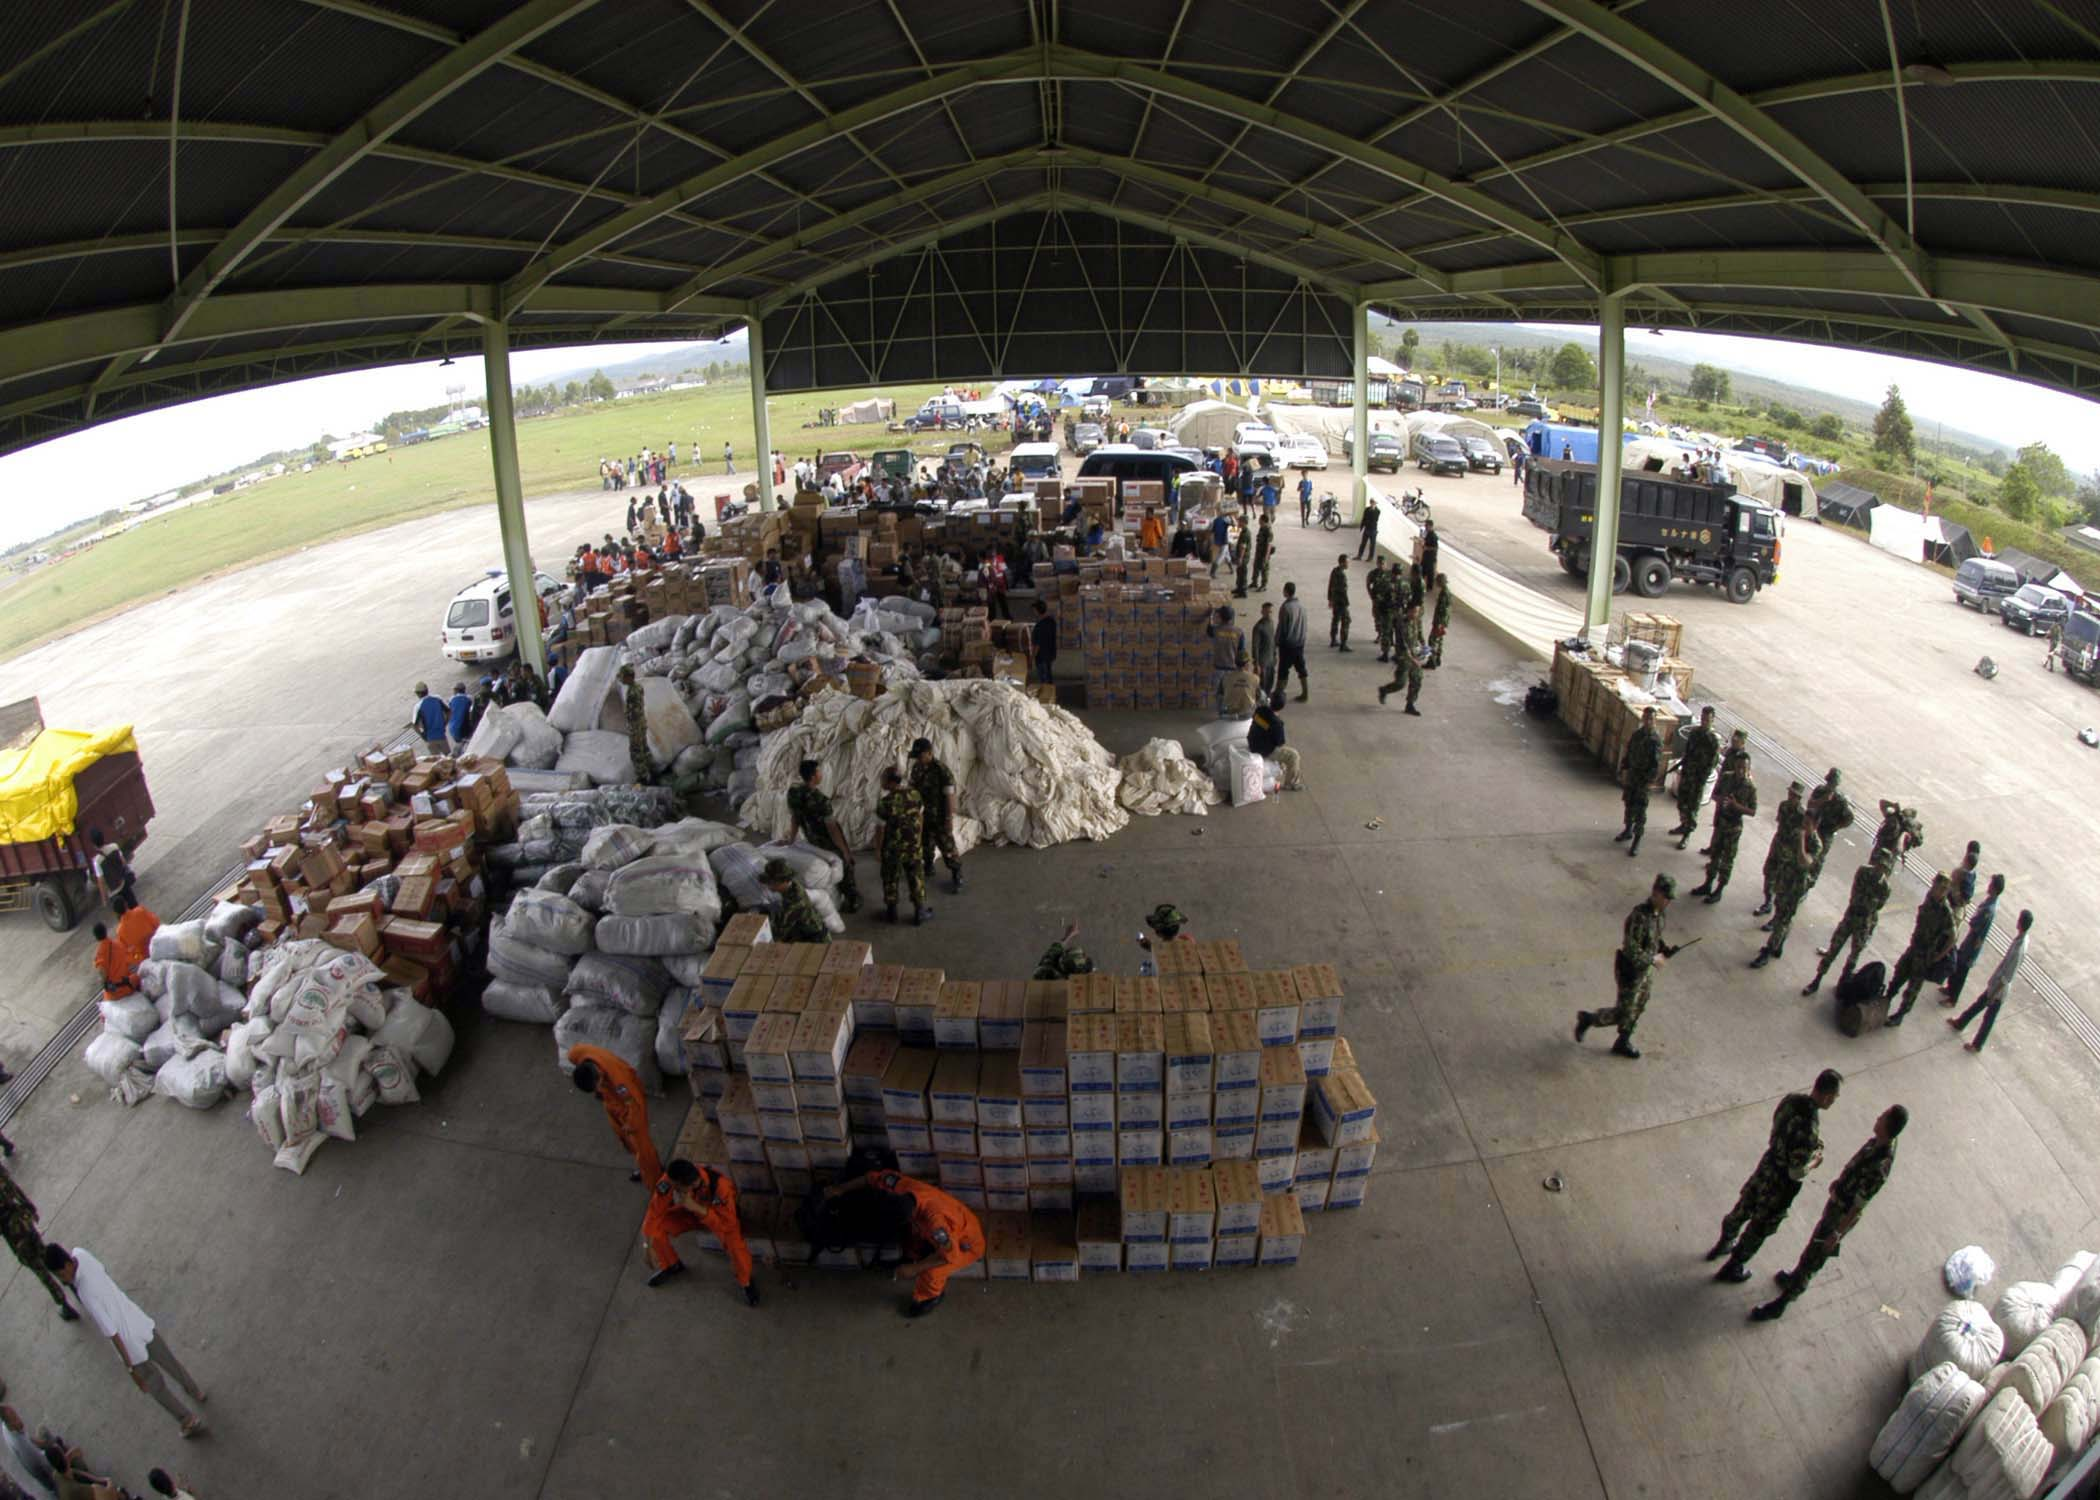 File:US Navy 050102-N-5362F-123 Disaster relief supplies from ...